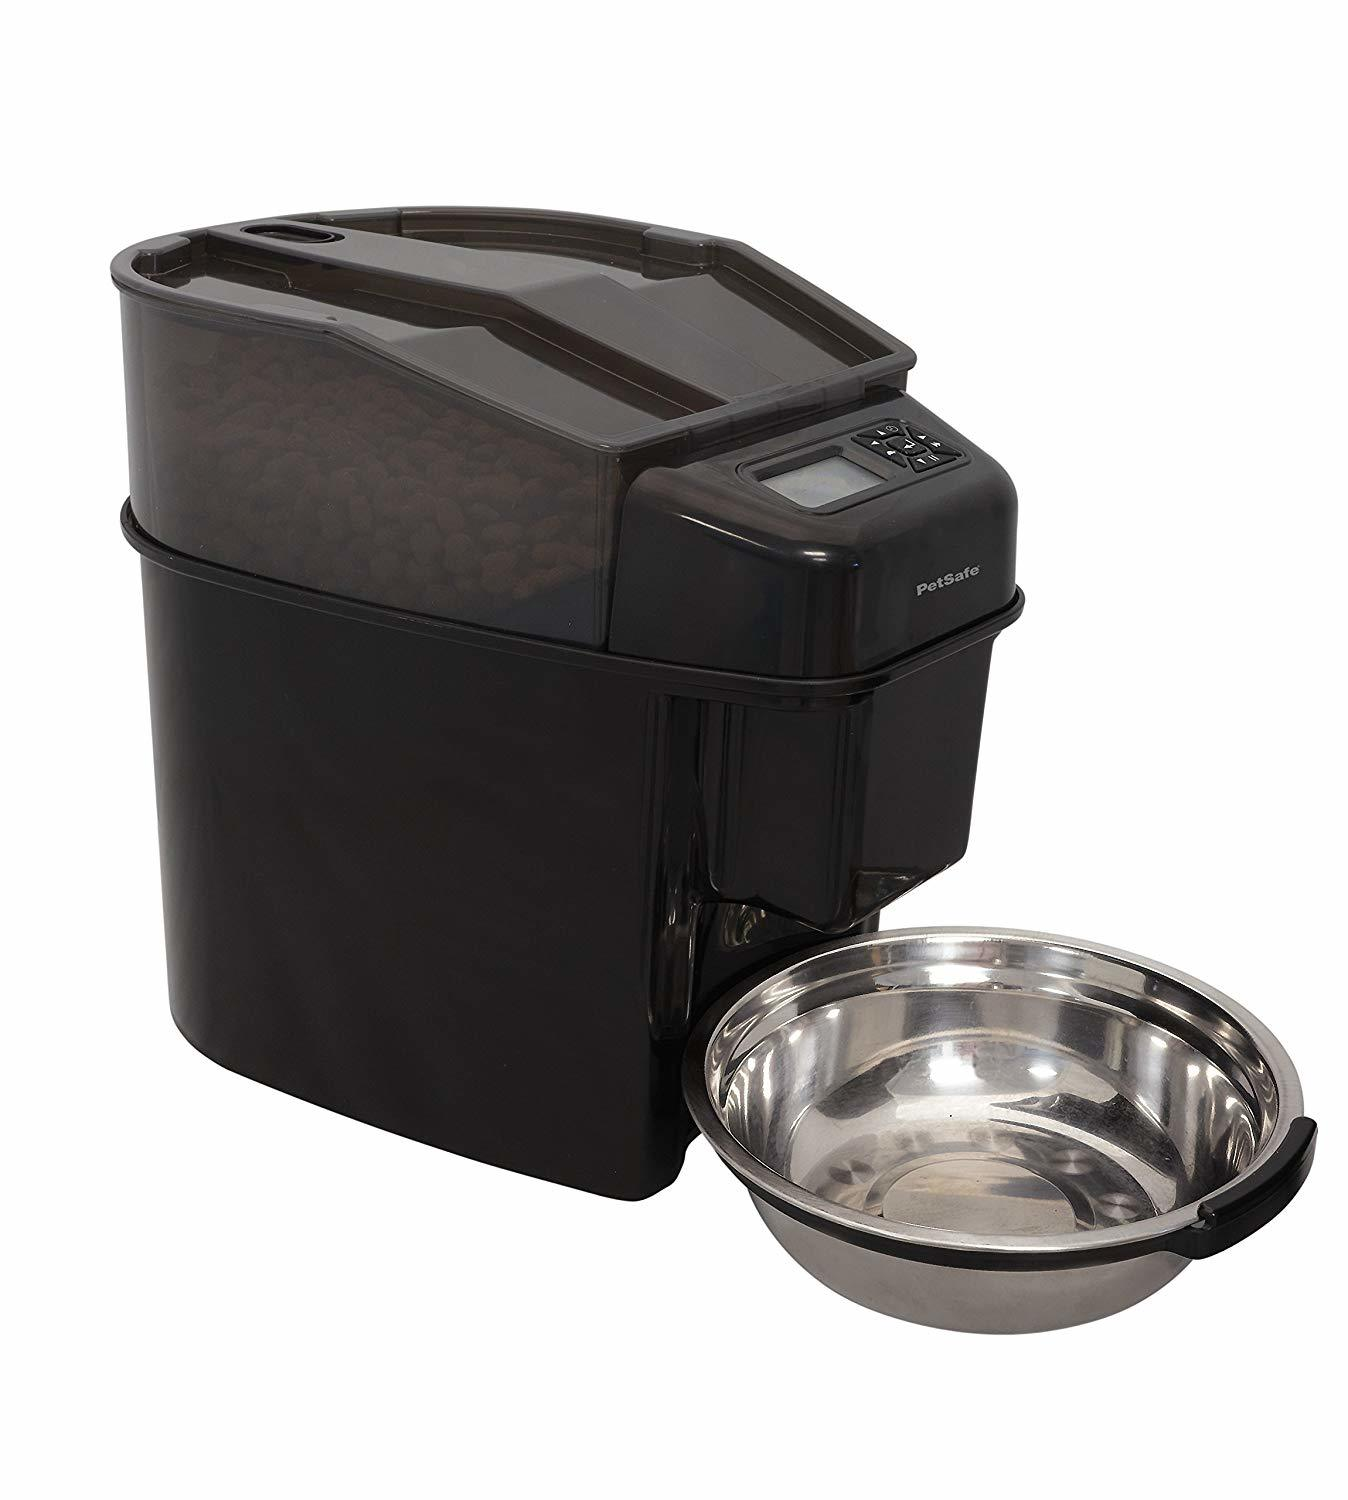 PetSafe Automatic Pet Feeder